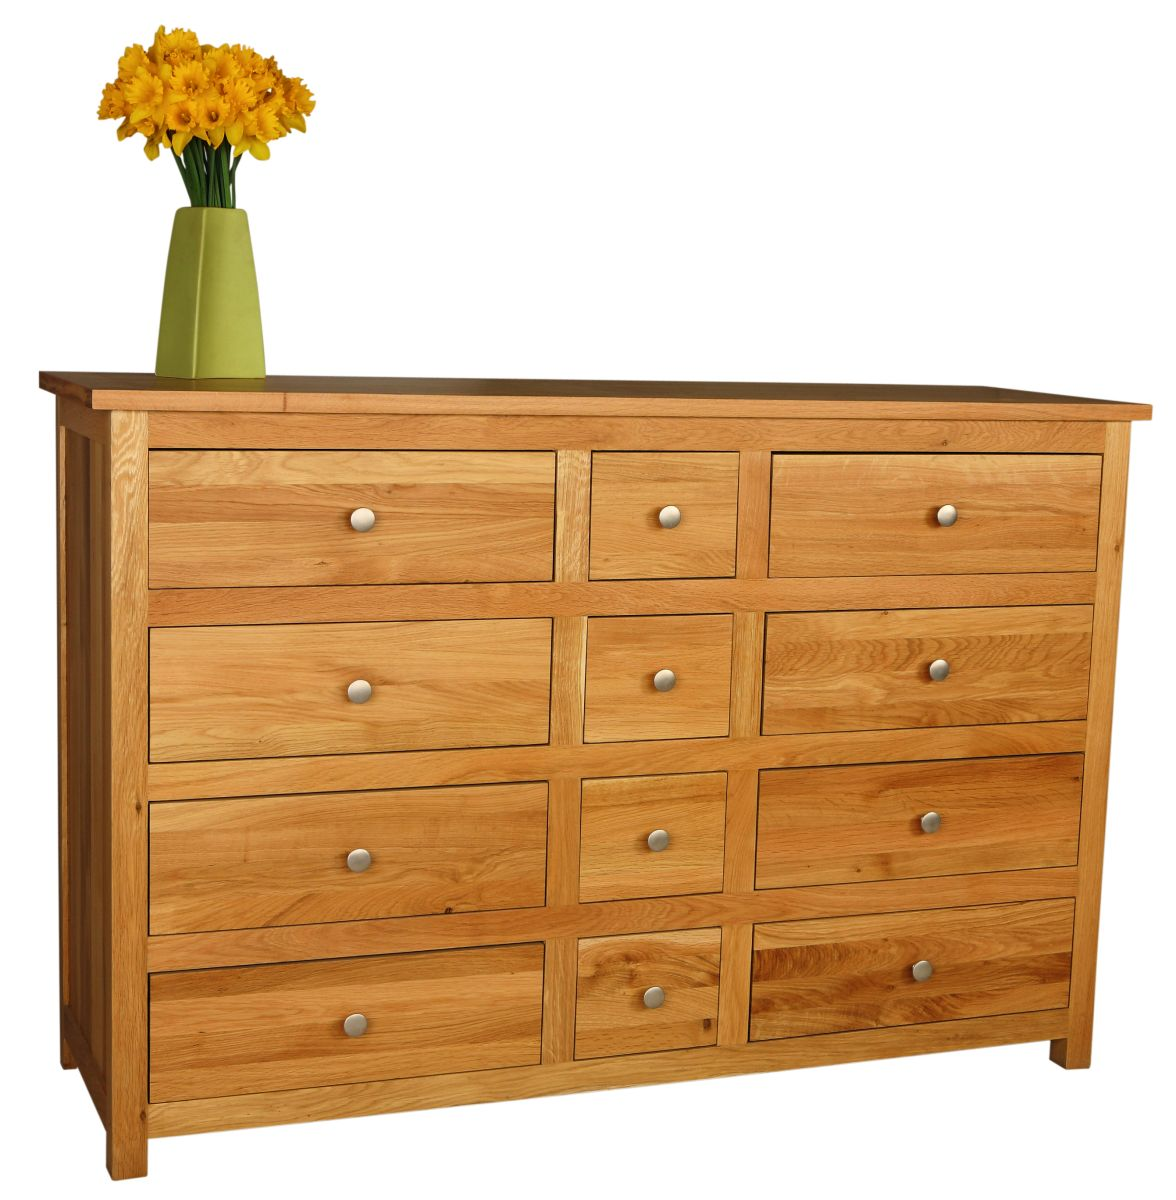 Solid Oak Chest, 12 Drawers